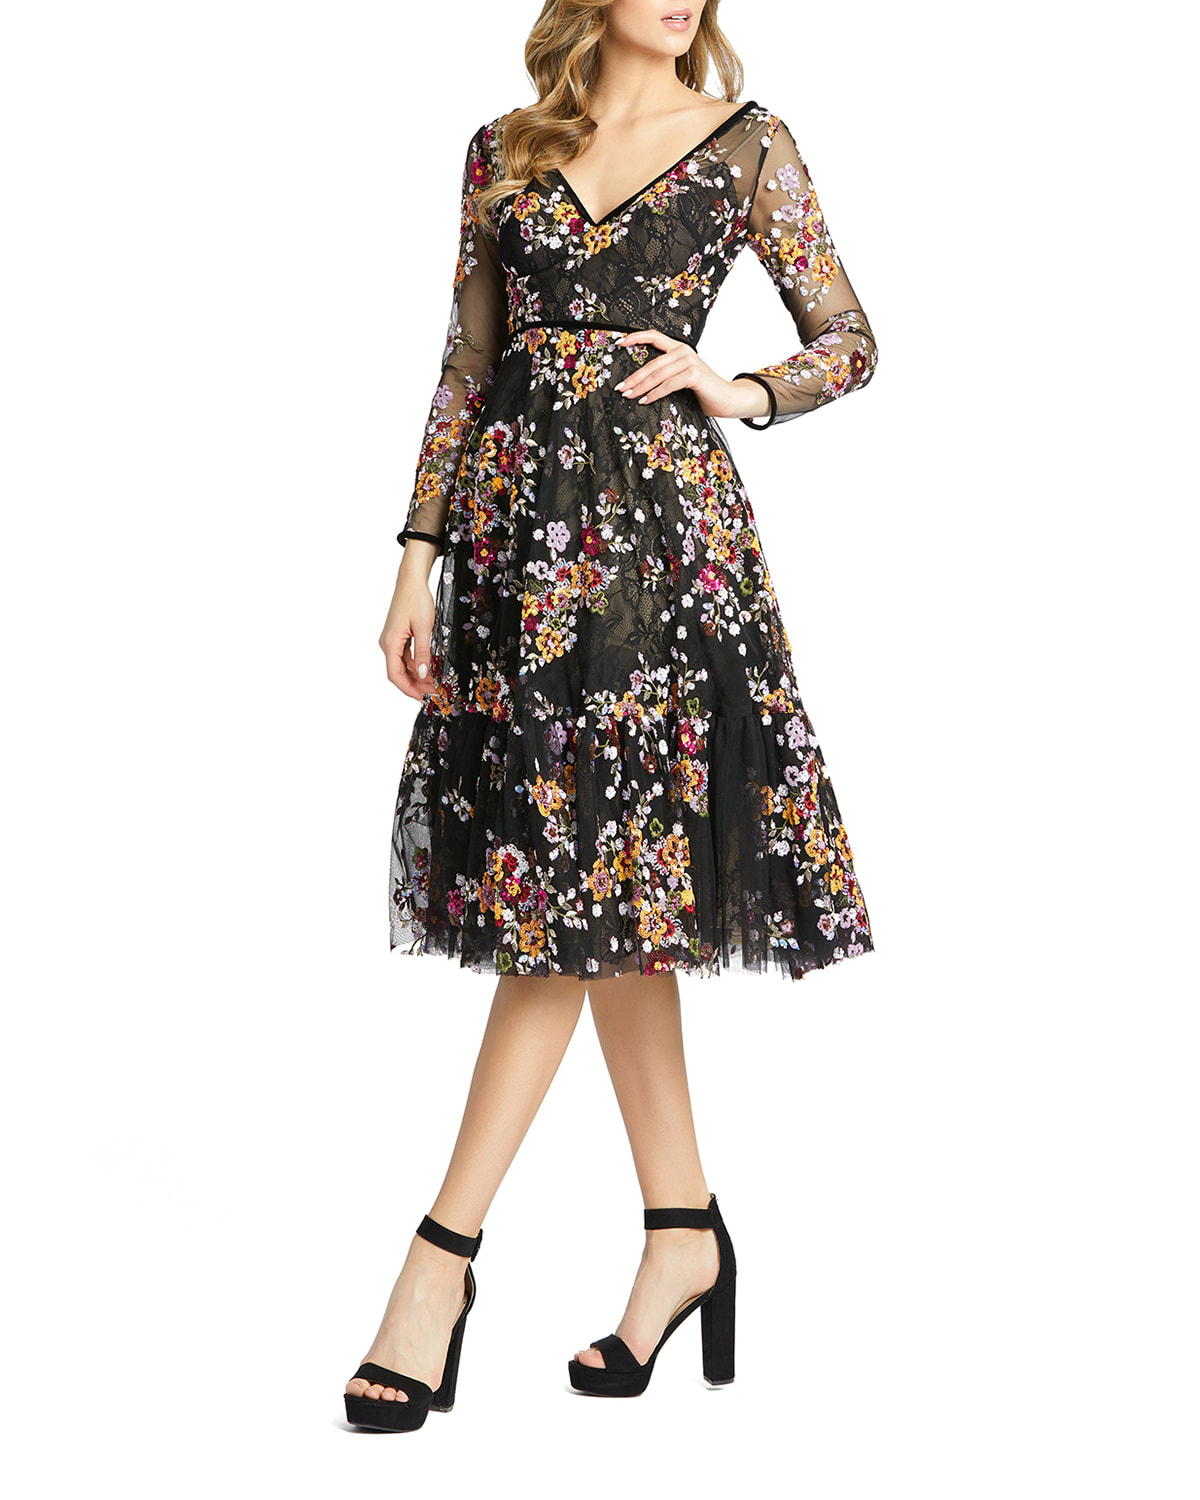 Sequined Floral Lace Long-Sleeve Illusion Dress